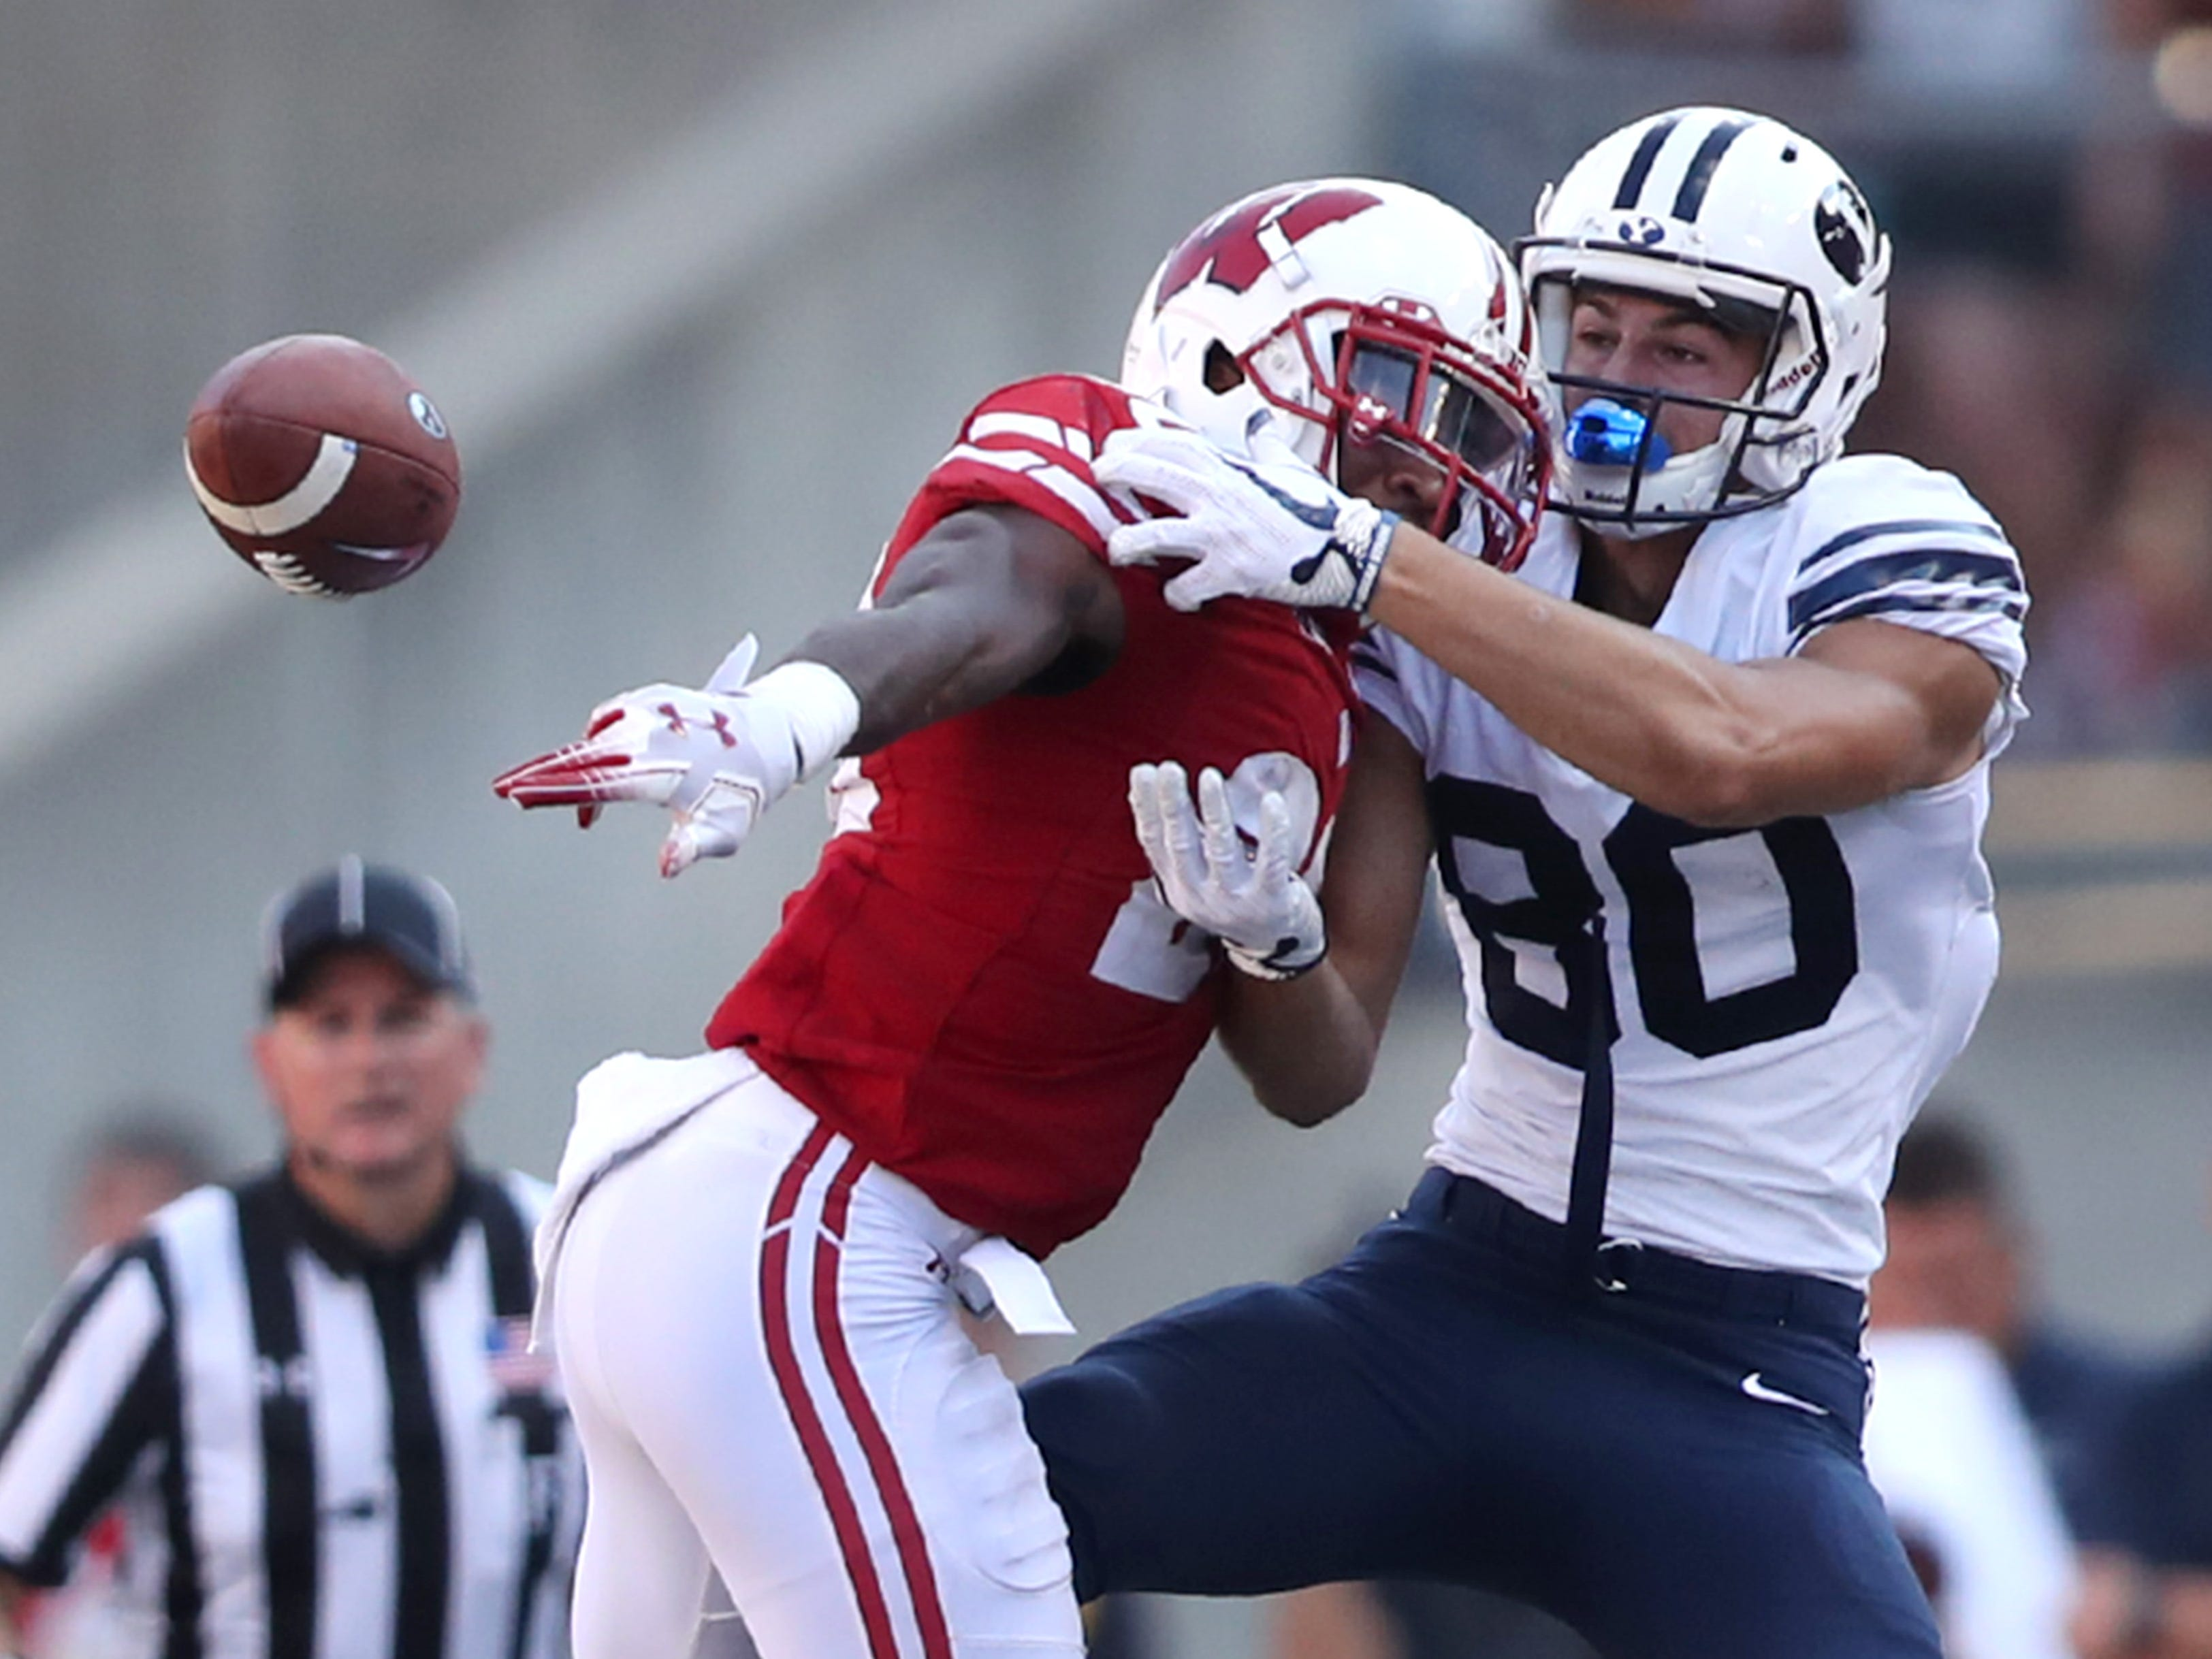 Wisconsin Badgers cornerback Faion Hicks breaks up a pass meant for Brigham Young wide receiver Gunner Romney.